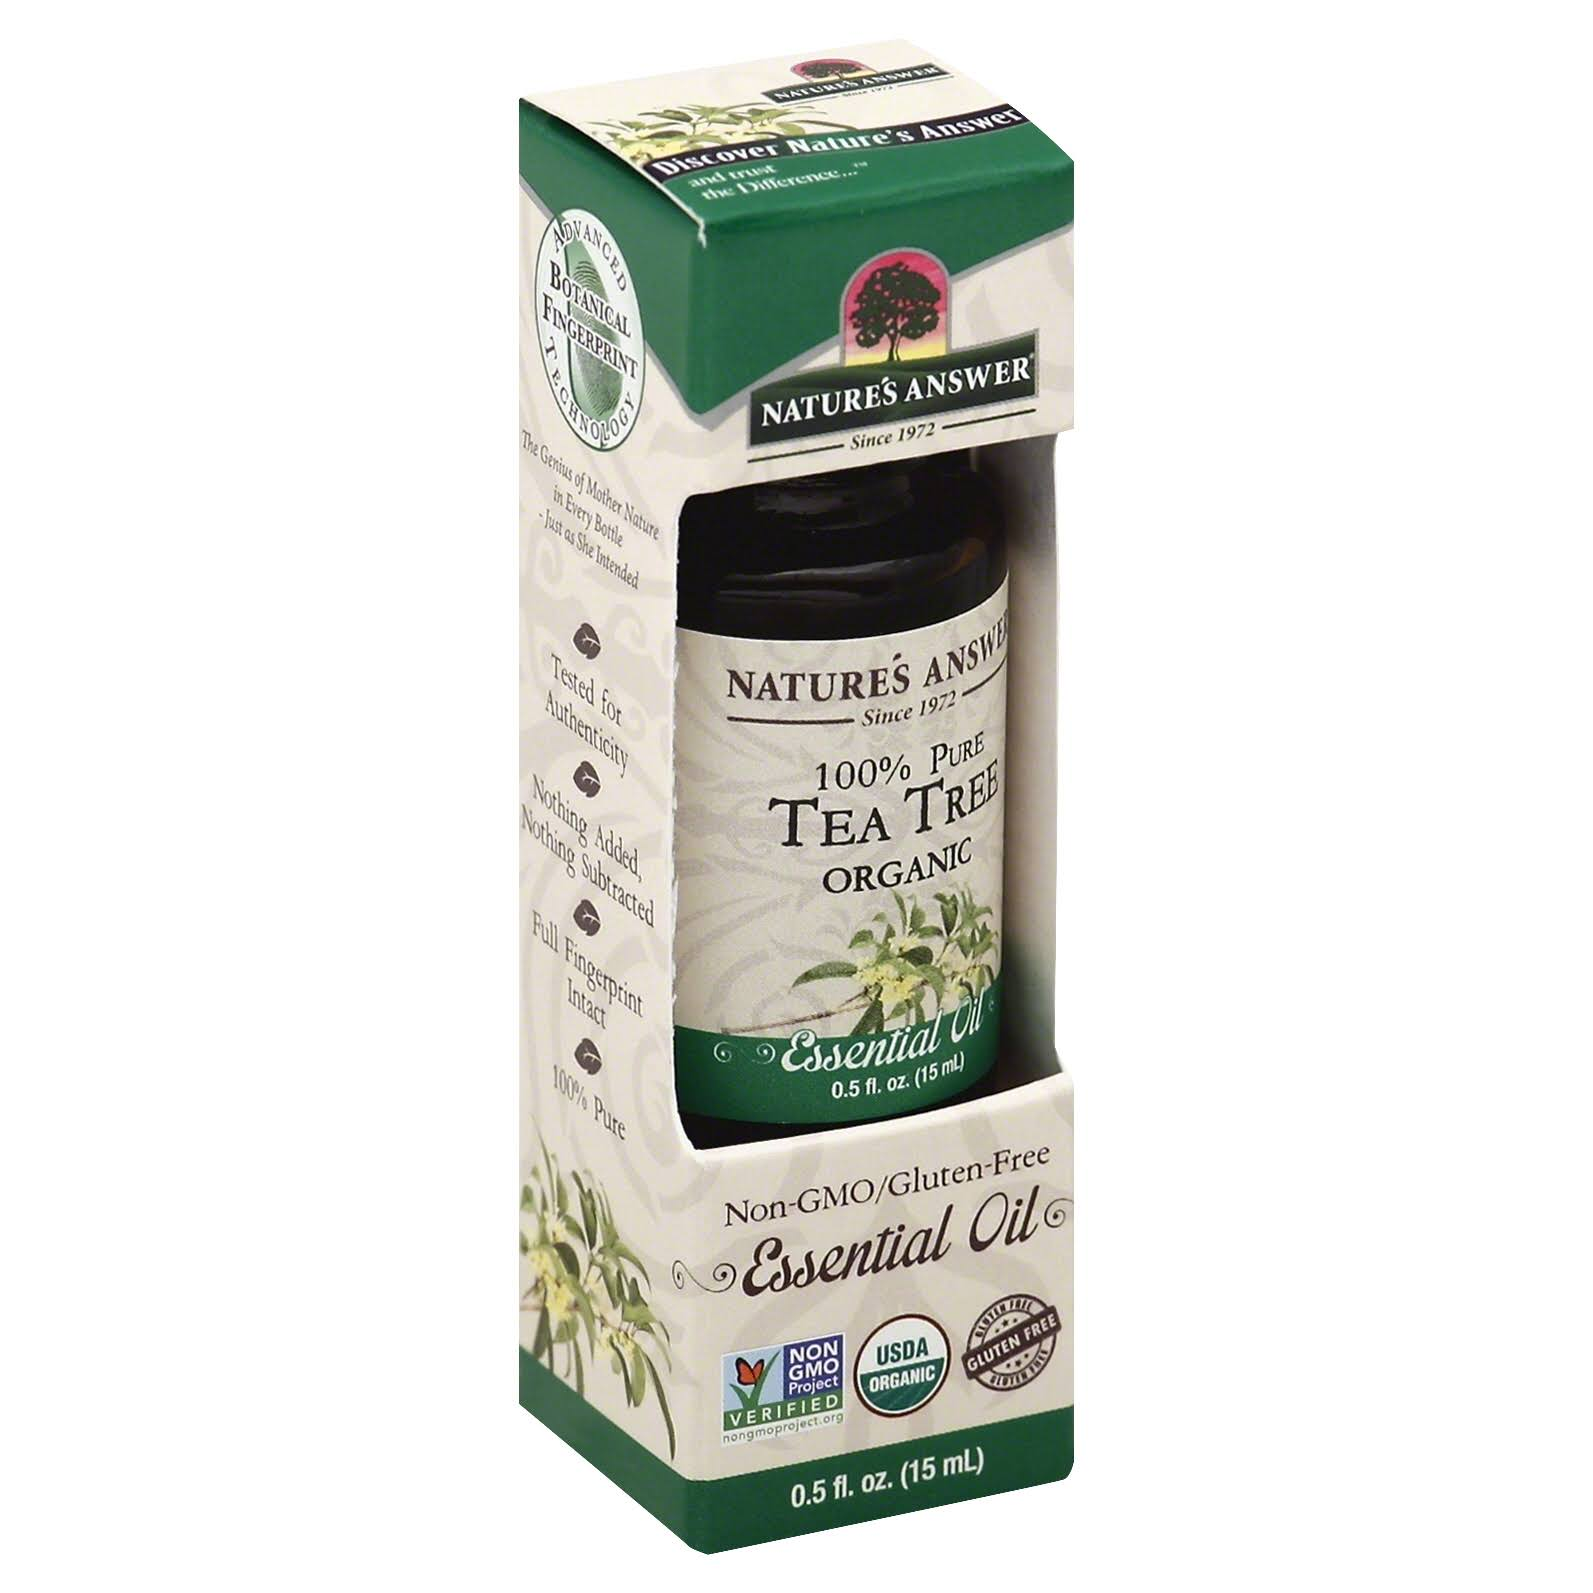 Nature's Answer Organic Essential Oil 100 Pure Tea Tree - 15ml